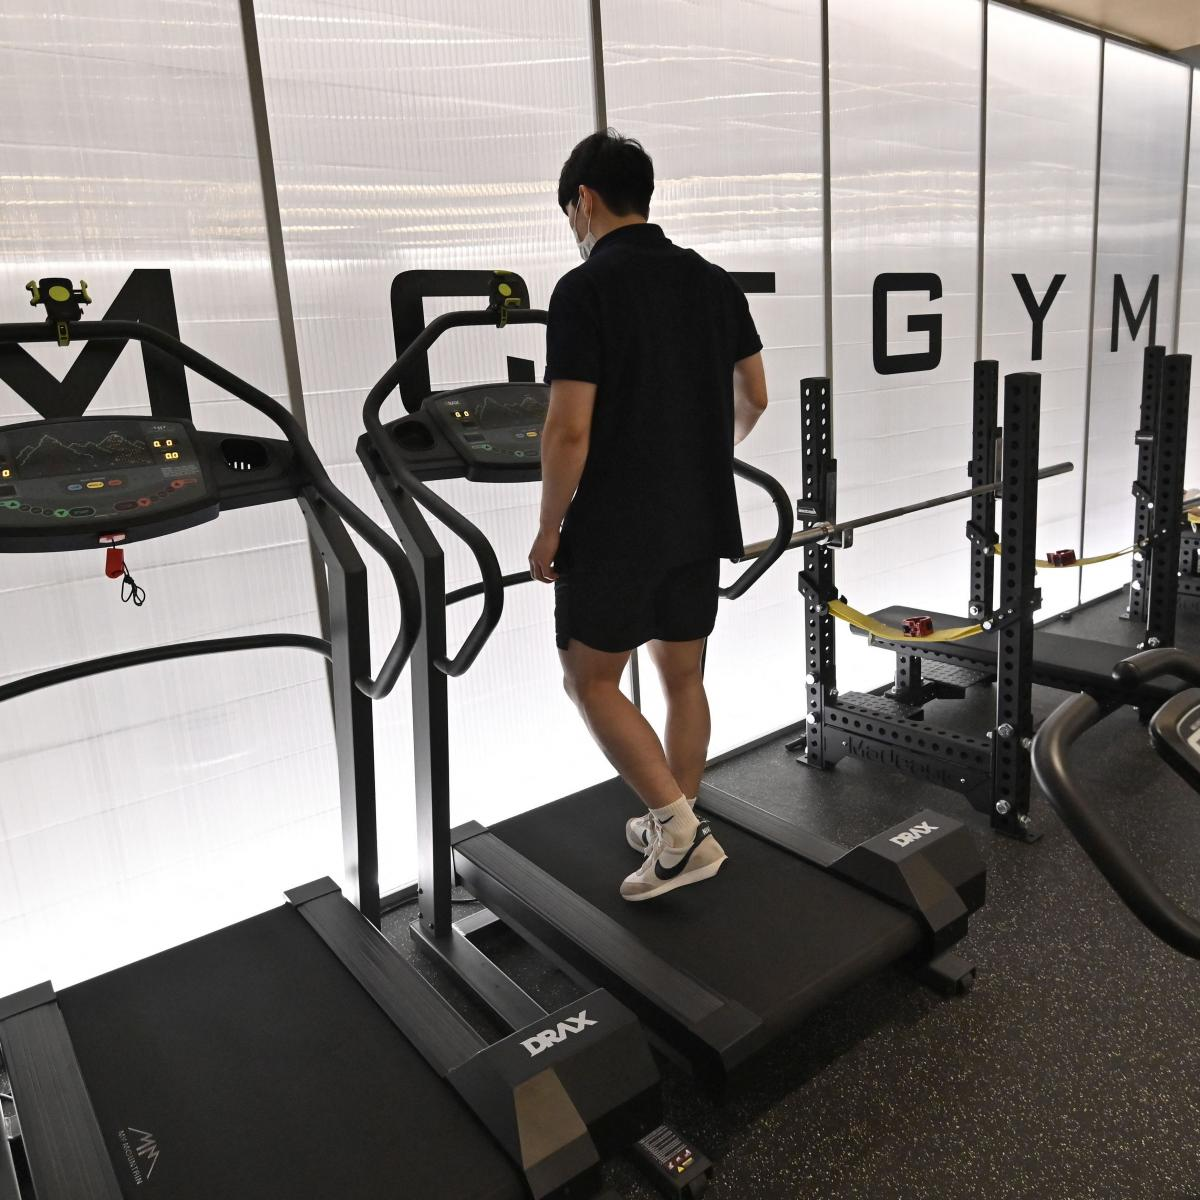 People exercise at a gym in Seoul on July 13, 2021 as South Korea announced implementation of level 4 social distancing measures amid concerns of a fourth wave of the coronavirus pandemic.